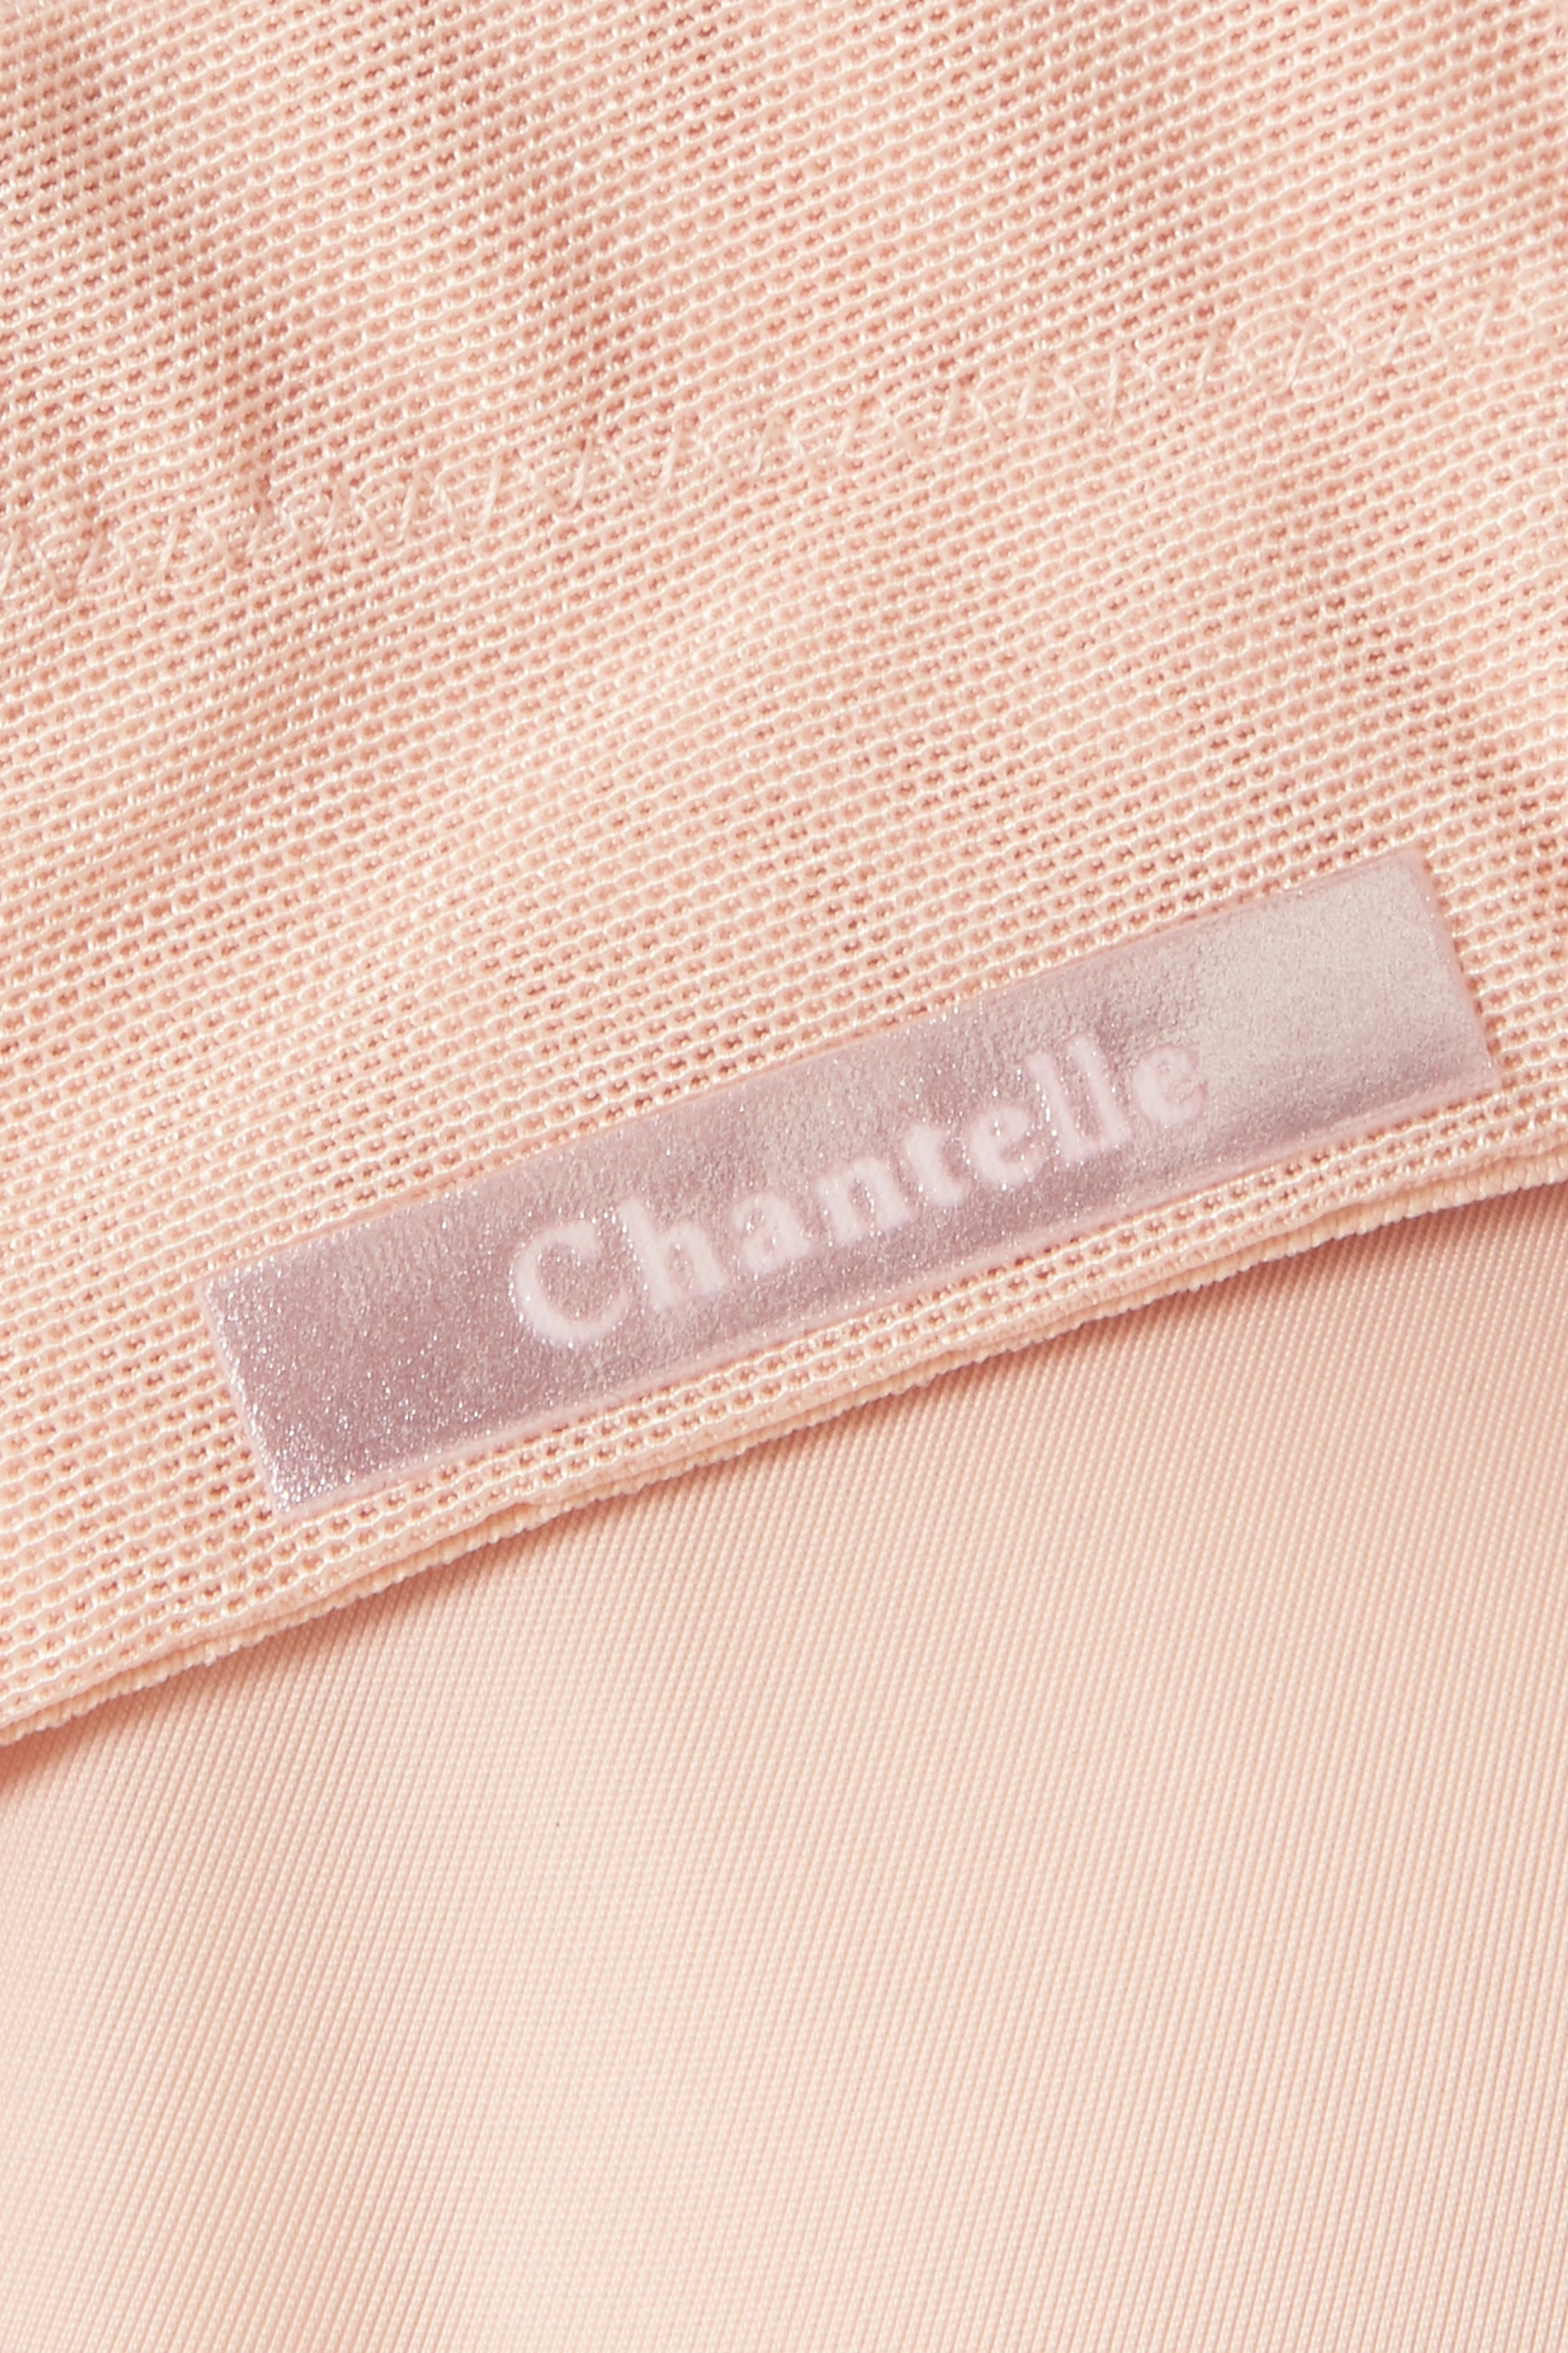 Chantelle Absolute Invisible T-Shirt-BH aus Stretch-Material